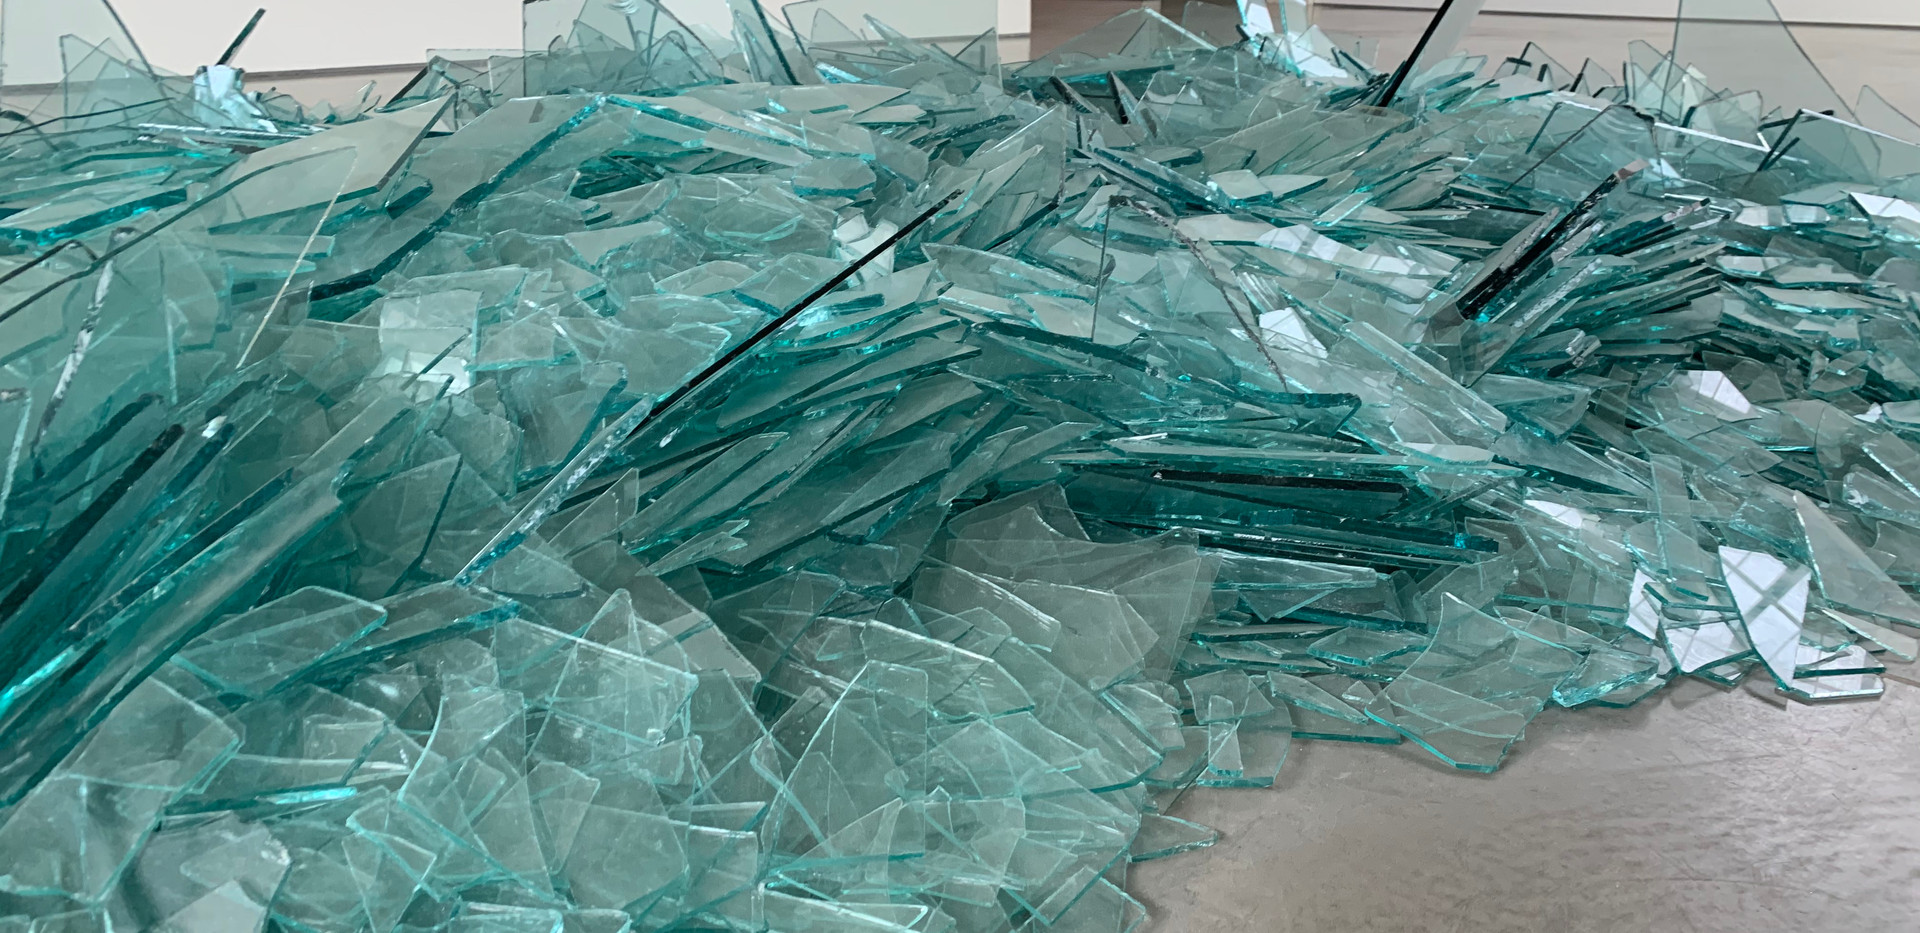 Robert Smithson, Map of Broken Glass (Atlantis), 1969